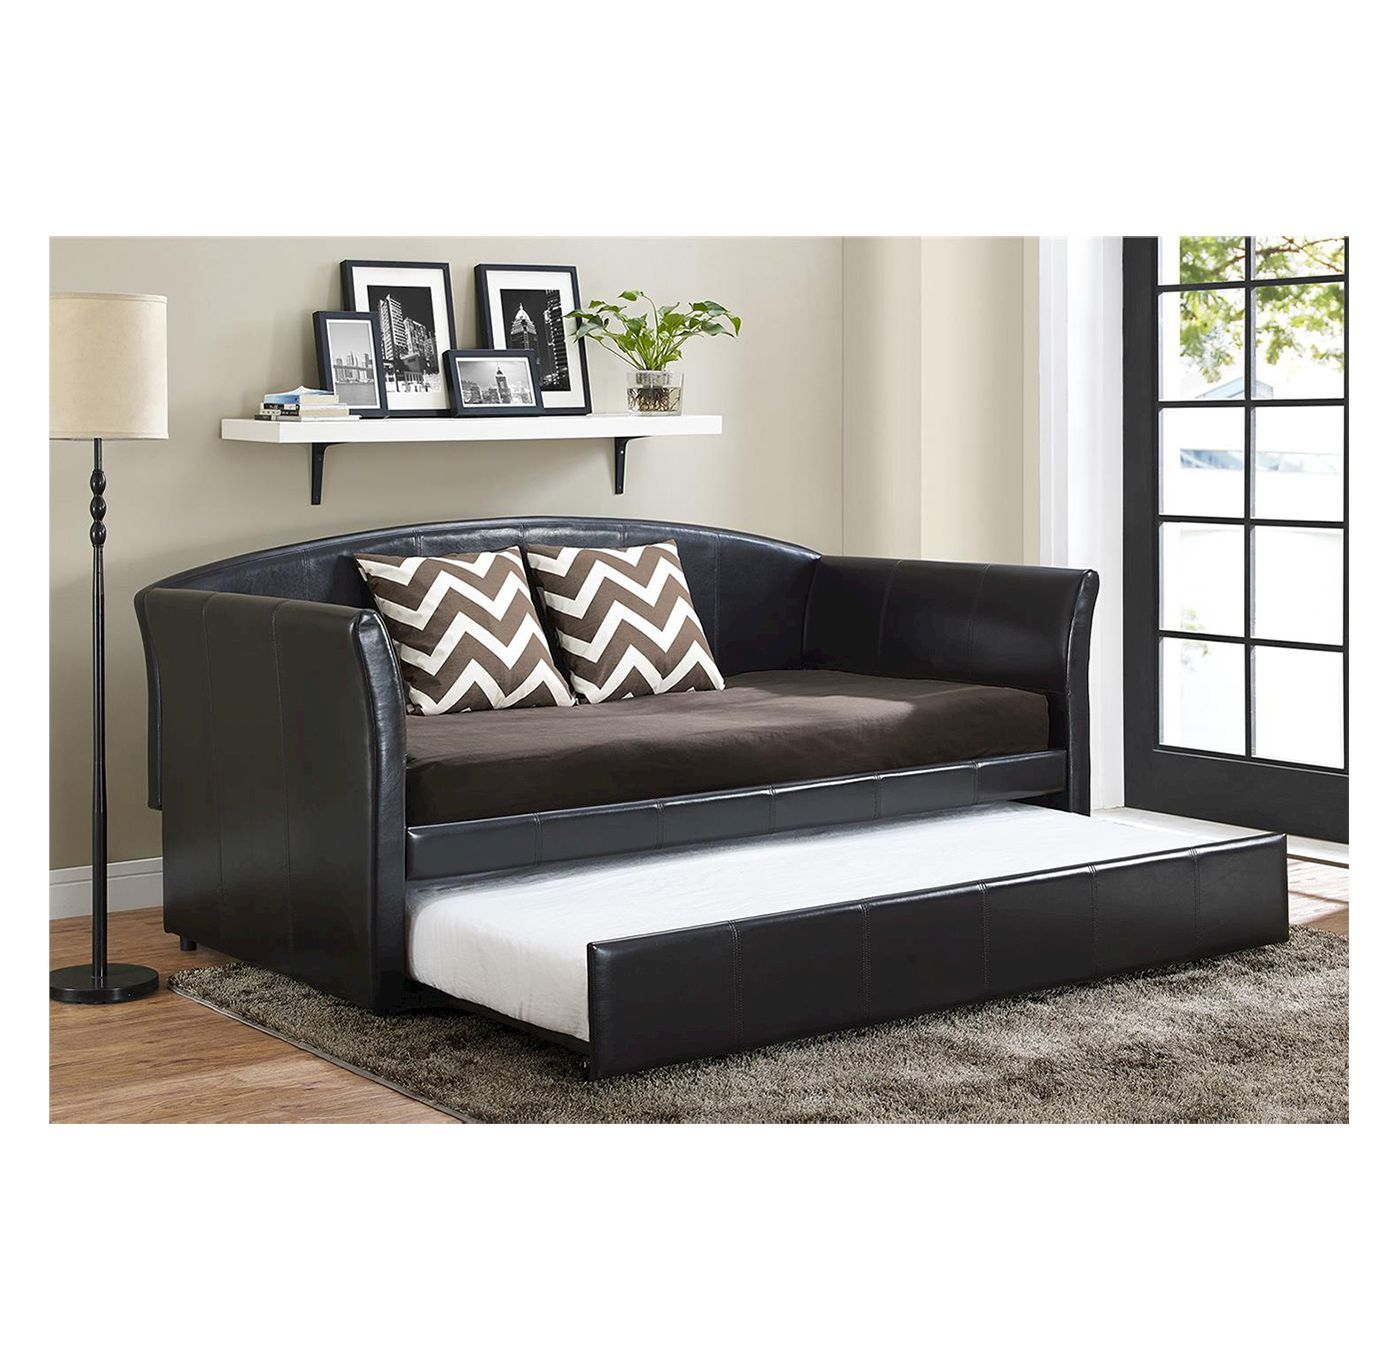 - Halle Upholstered Daybed And Trundle Twin Brown/Black - Dorel Home